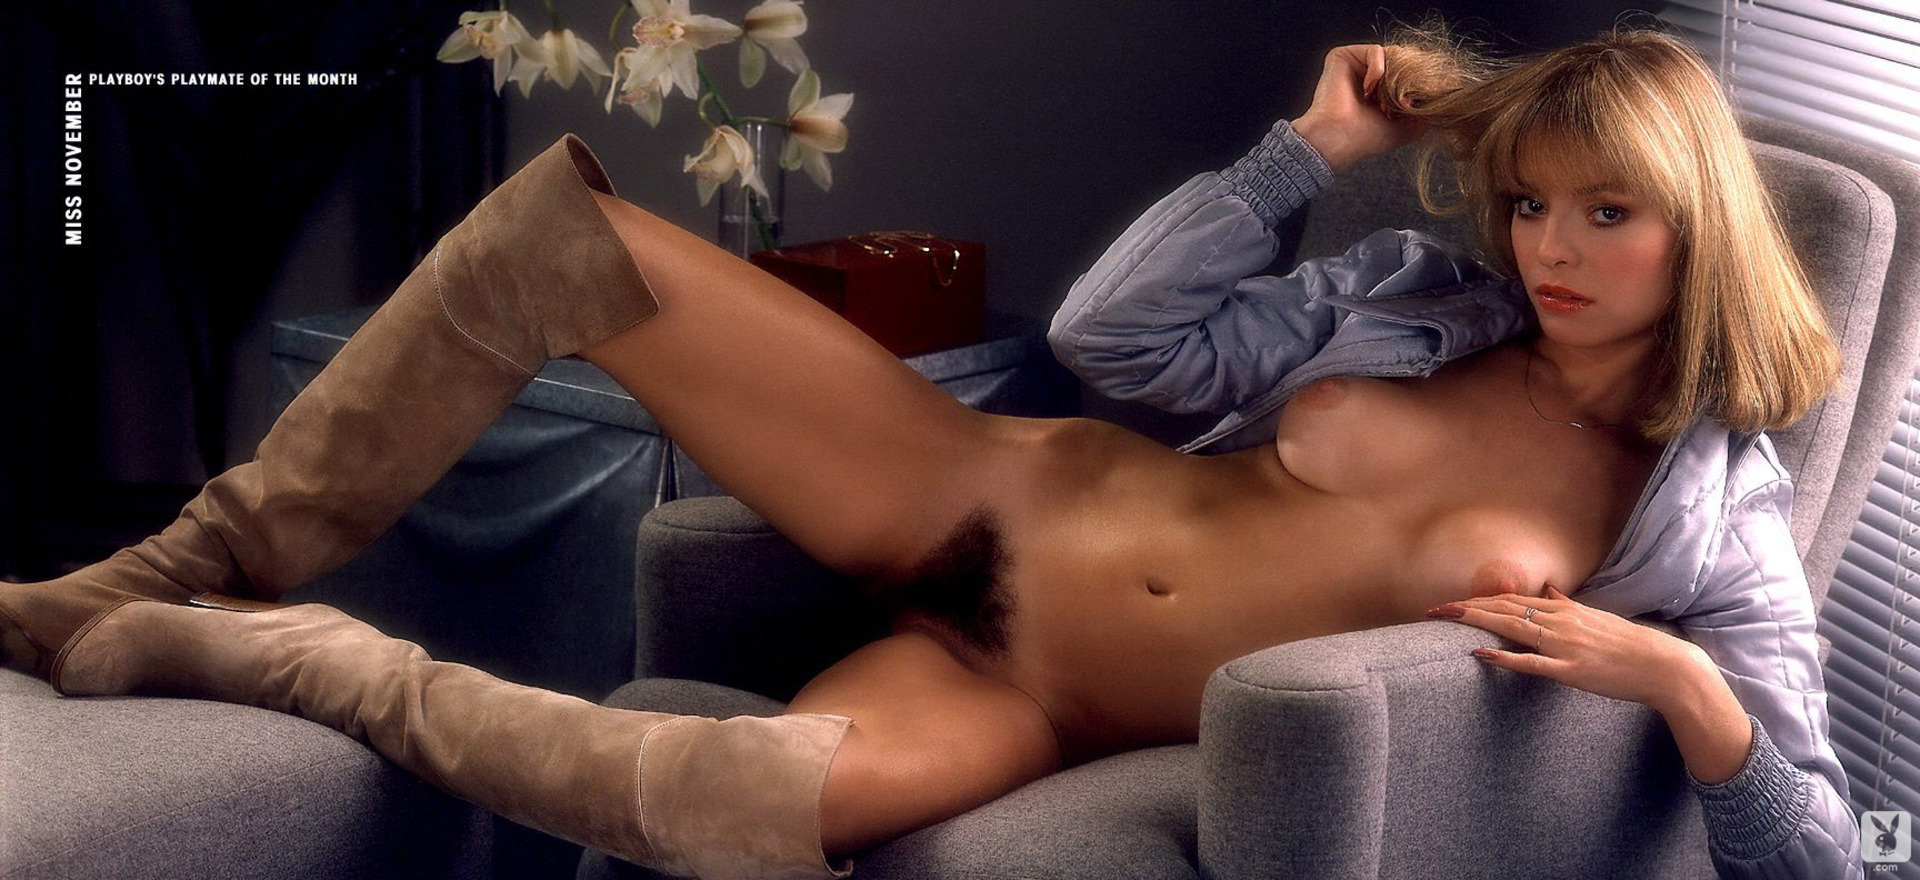 Monique st. pierre naked